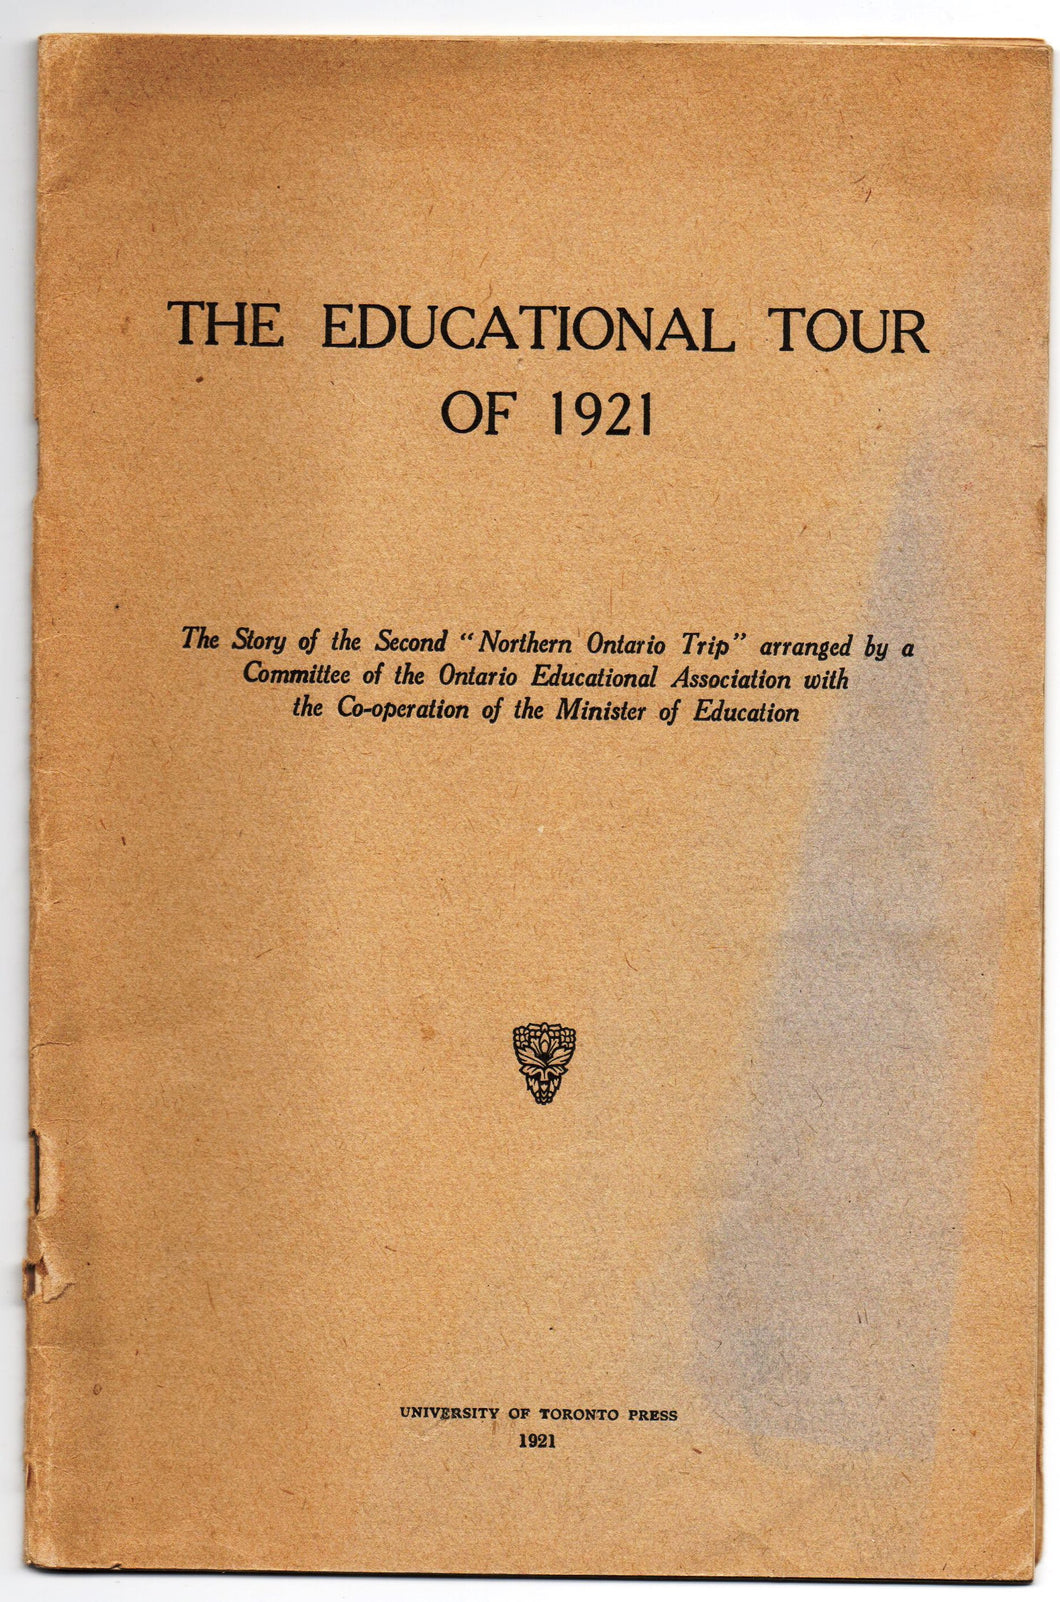 The Educational Tour of 1921